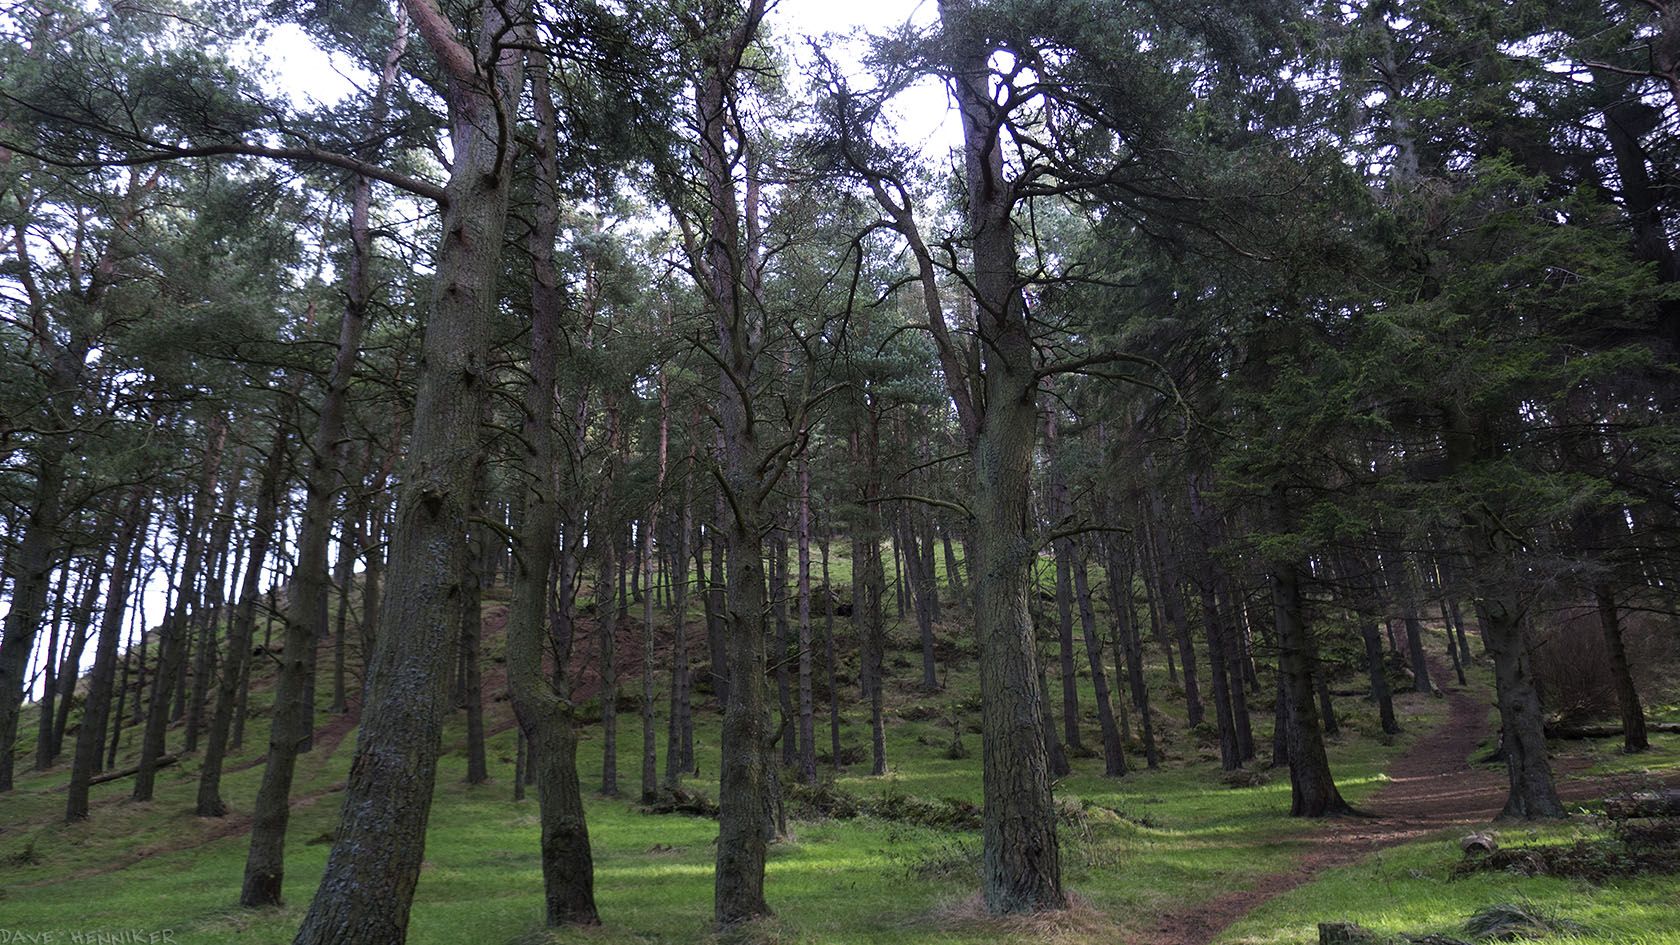 WhitehillTrees13